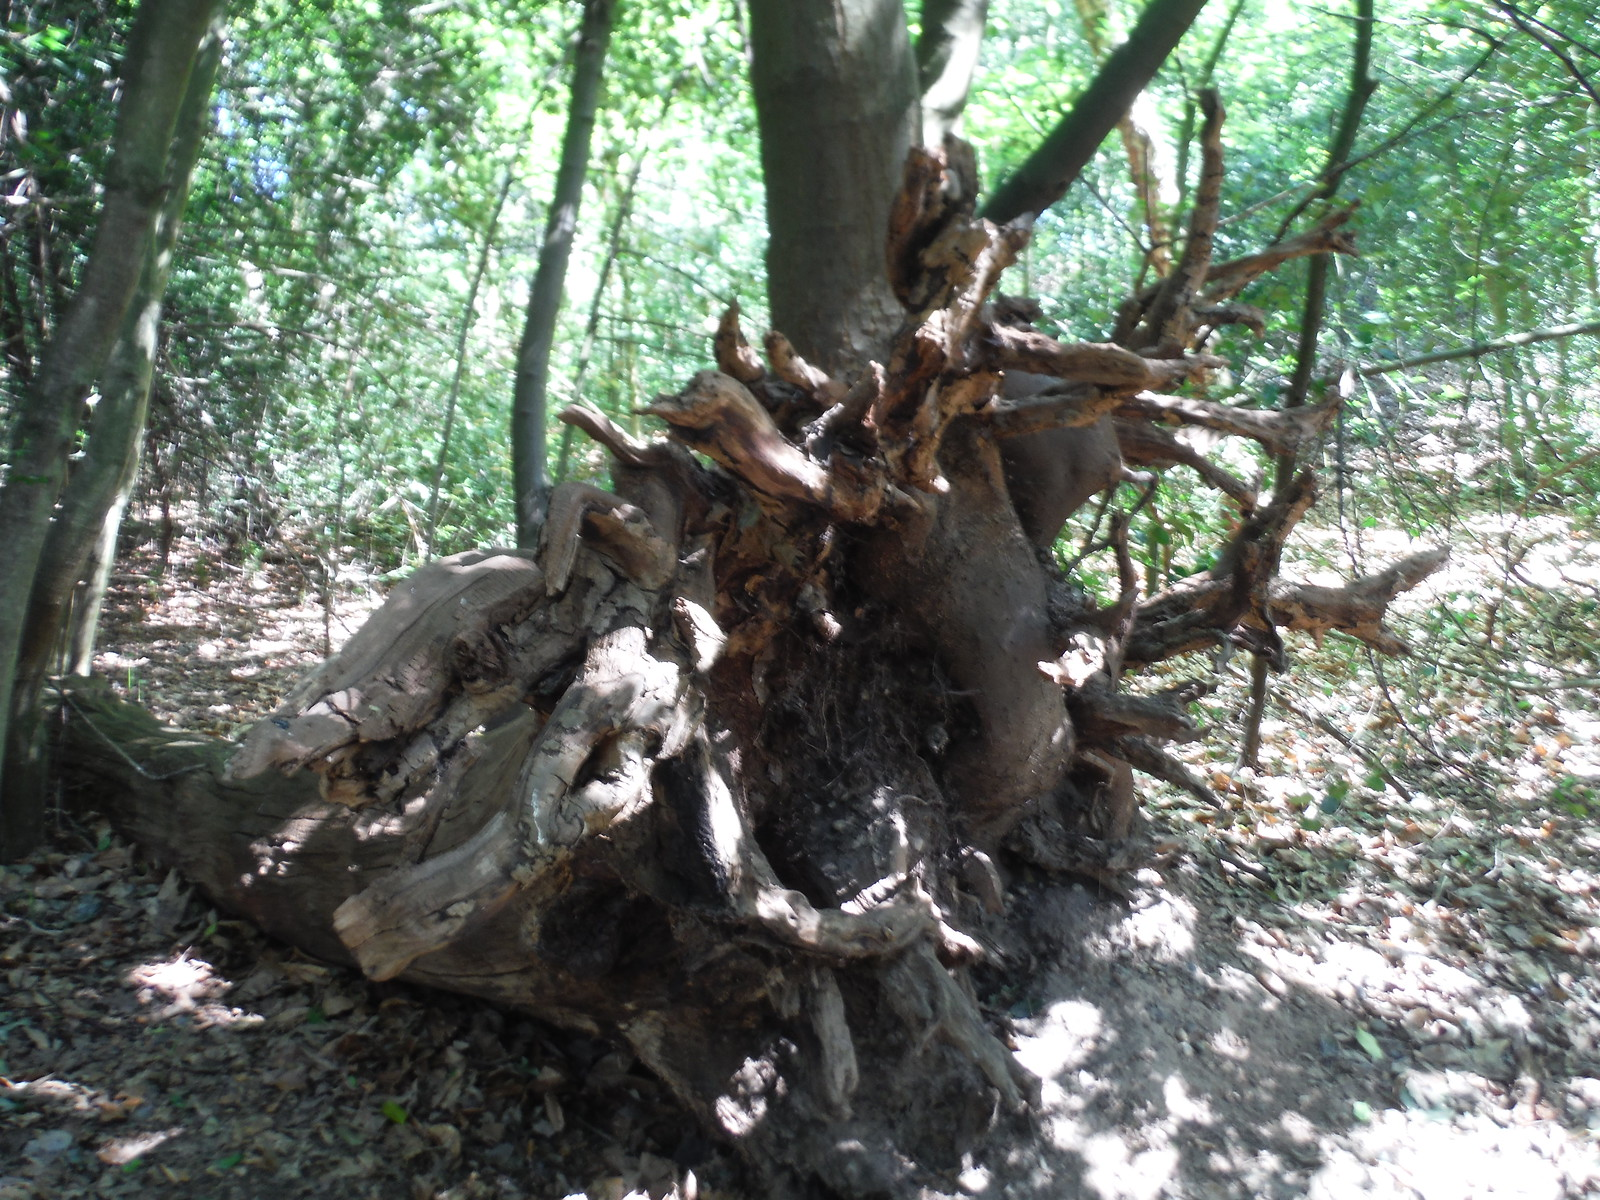 Out of a toppled tree, a new one grows (Castle Wood) SWC Short Walk 44 - Oxleas Wood and Shooters Hill (Falconwood Circular)